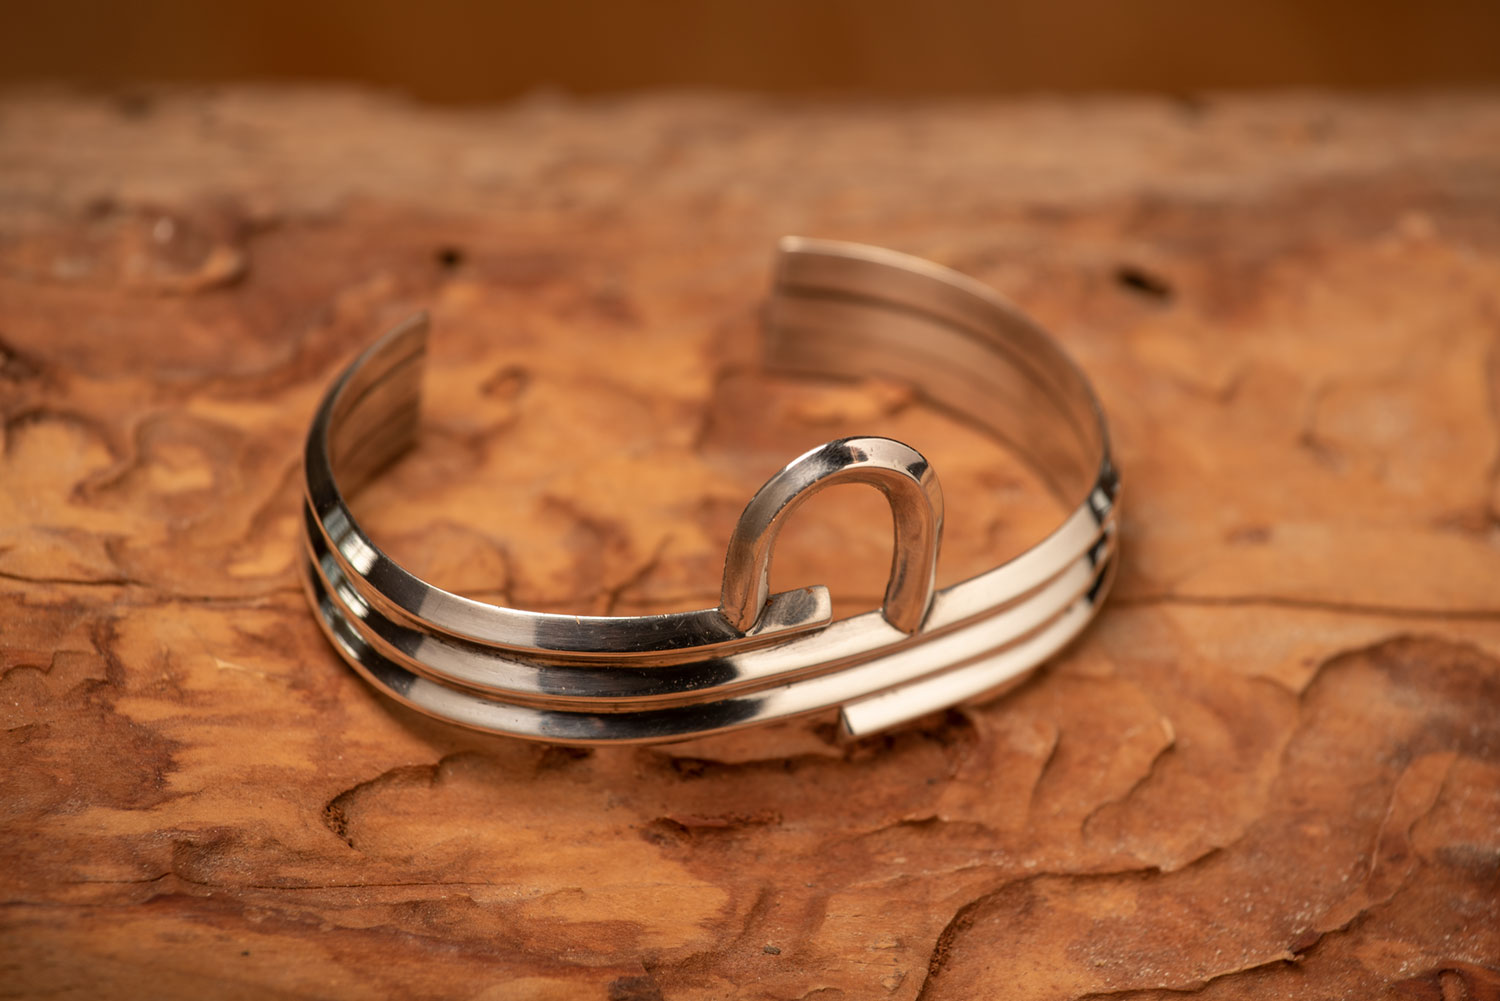 Minimalist Jewelry with Meaning